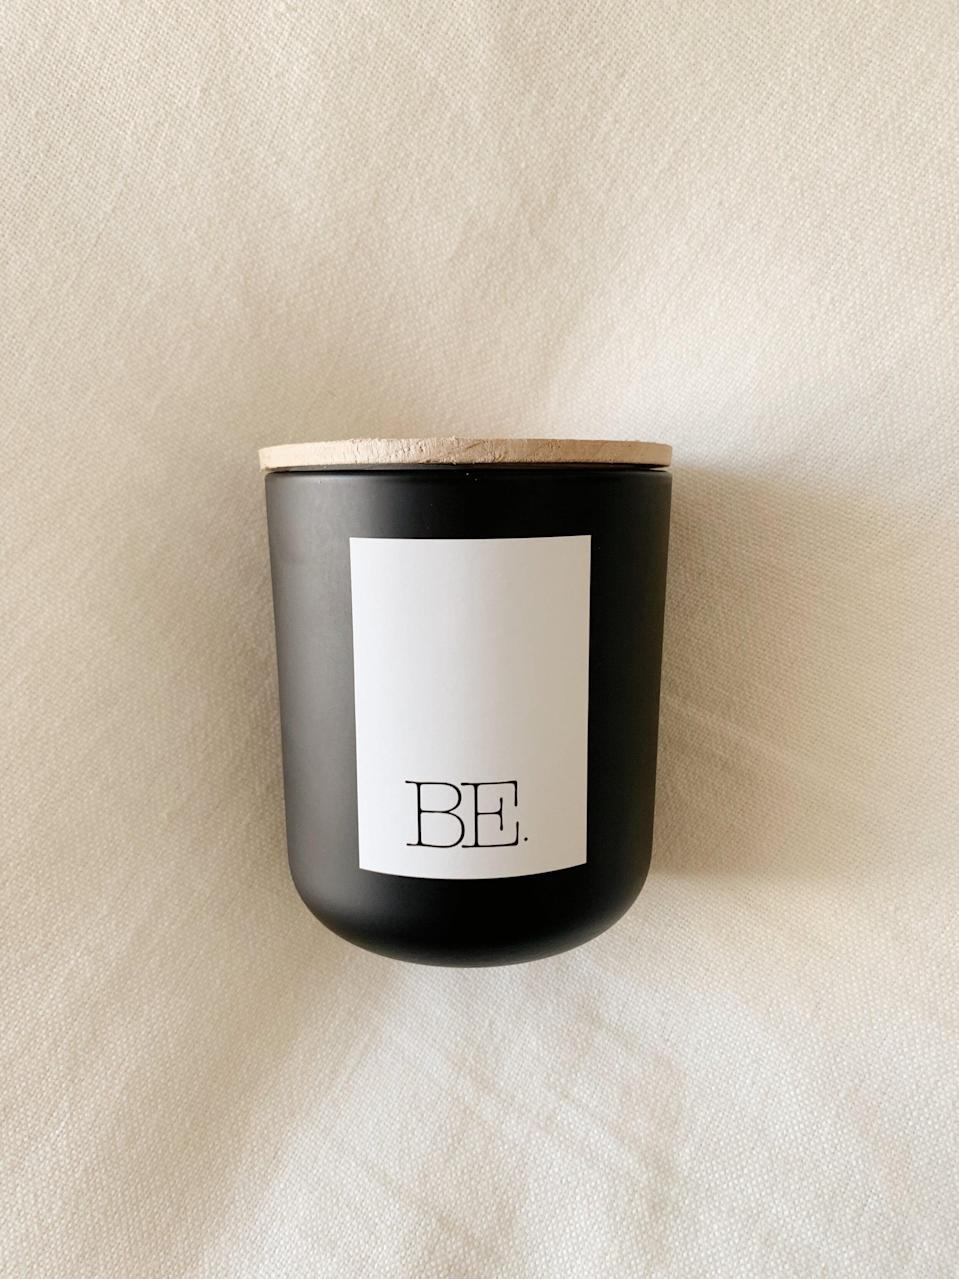 """<p>Fill your home with the amazing scent of the <a href=""""https://www.popsugar.com/buy/LIGHT-Santal-Vanille-Sandalwood-Candle-584601?p_name=BE.%20LIGHT%20Santal%20Vanille%20Sandalwood%20Candle&retailer=homebybe.com&pid=584601&price=45&evar1=casa%3Aus&evar9=47572354&evar98=https%3A%2F%2Fwww.popsugar.com%2Fhome%2Fphoto-gallery%2F47572354%2Fimage%2F47572400%2FBE-LIGHT-Santal-Vanille-Sandalwood-Candle&list1=shopping%2Chome%20decorating%2Cdecor%20shopping%2Chome%20shopping&prop13=mobile&pdata=1"""" class=""""link rapid-noclick-resp"""" rel=""""nofollow noopener"""" target=""""_blank"""" data-ylk=""""slk:BE. LIGHT Santal Vanille Sandalwood Candle"""">BE. LIGHT Santal Vanille Sandalwood Candle</a> ($45).</p>"""